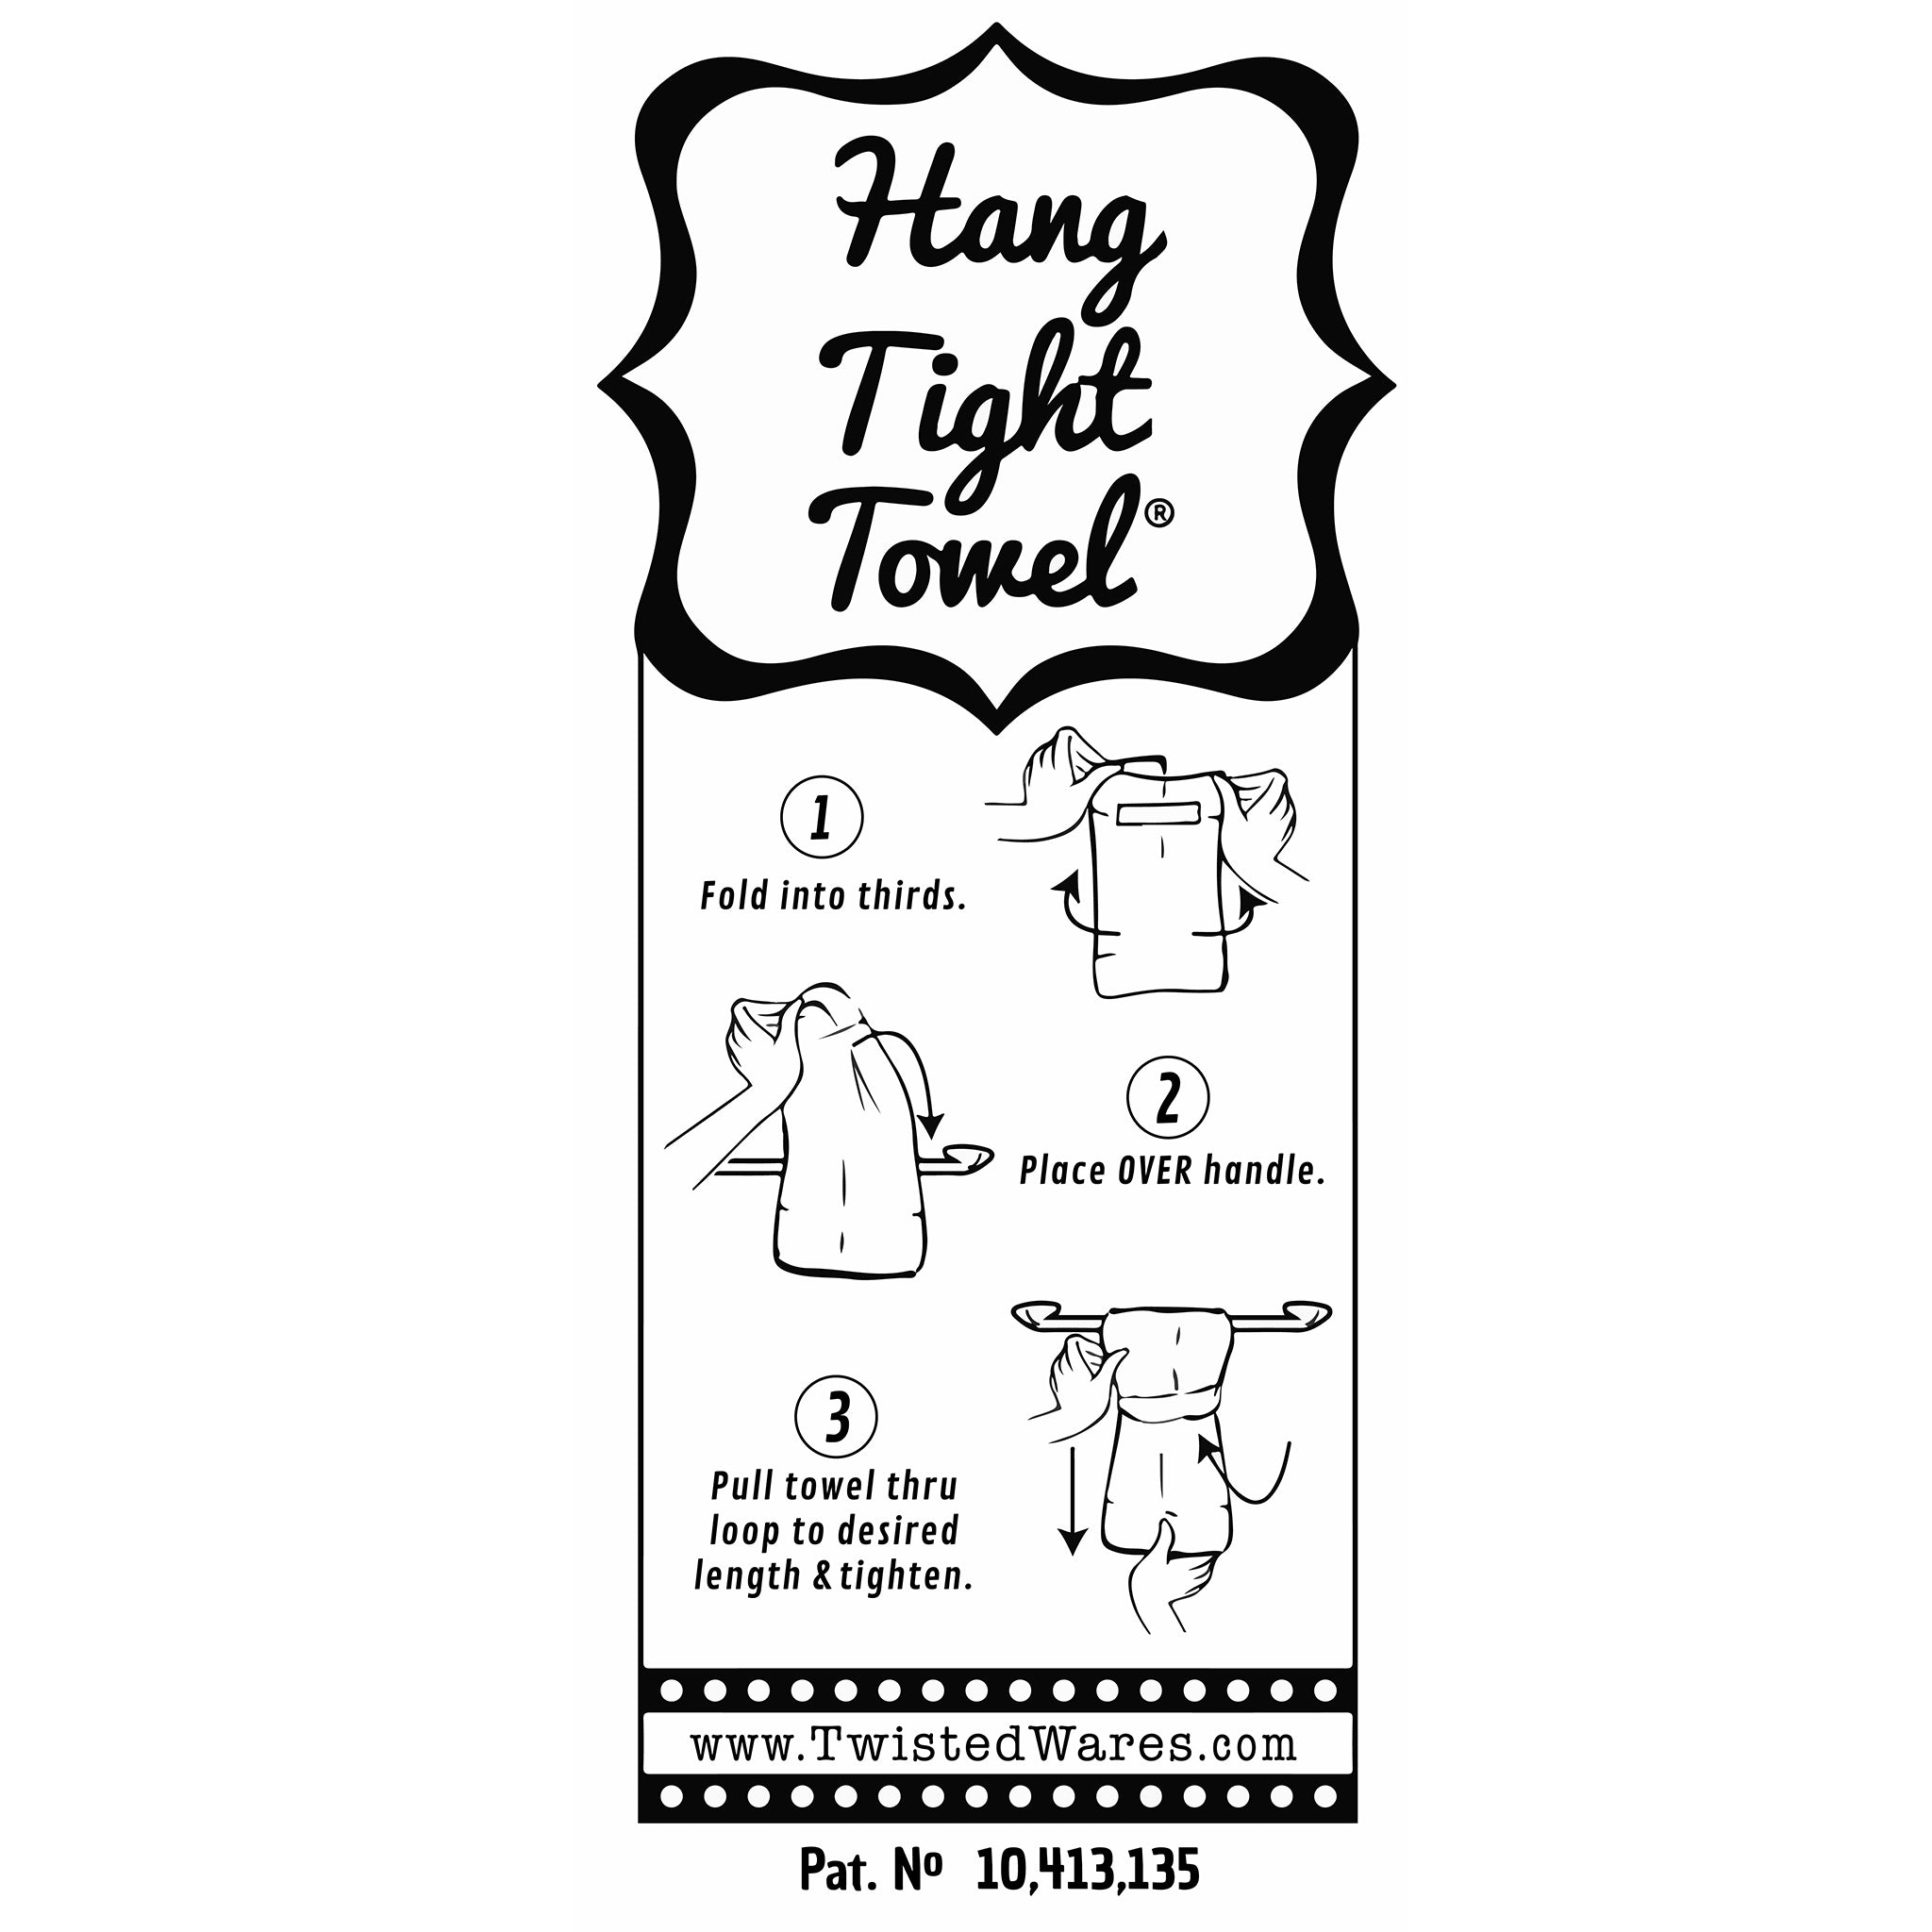 Fuck Dish Shit Flour Sack Hang Tight Towel®